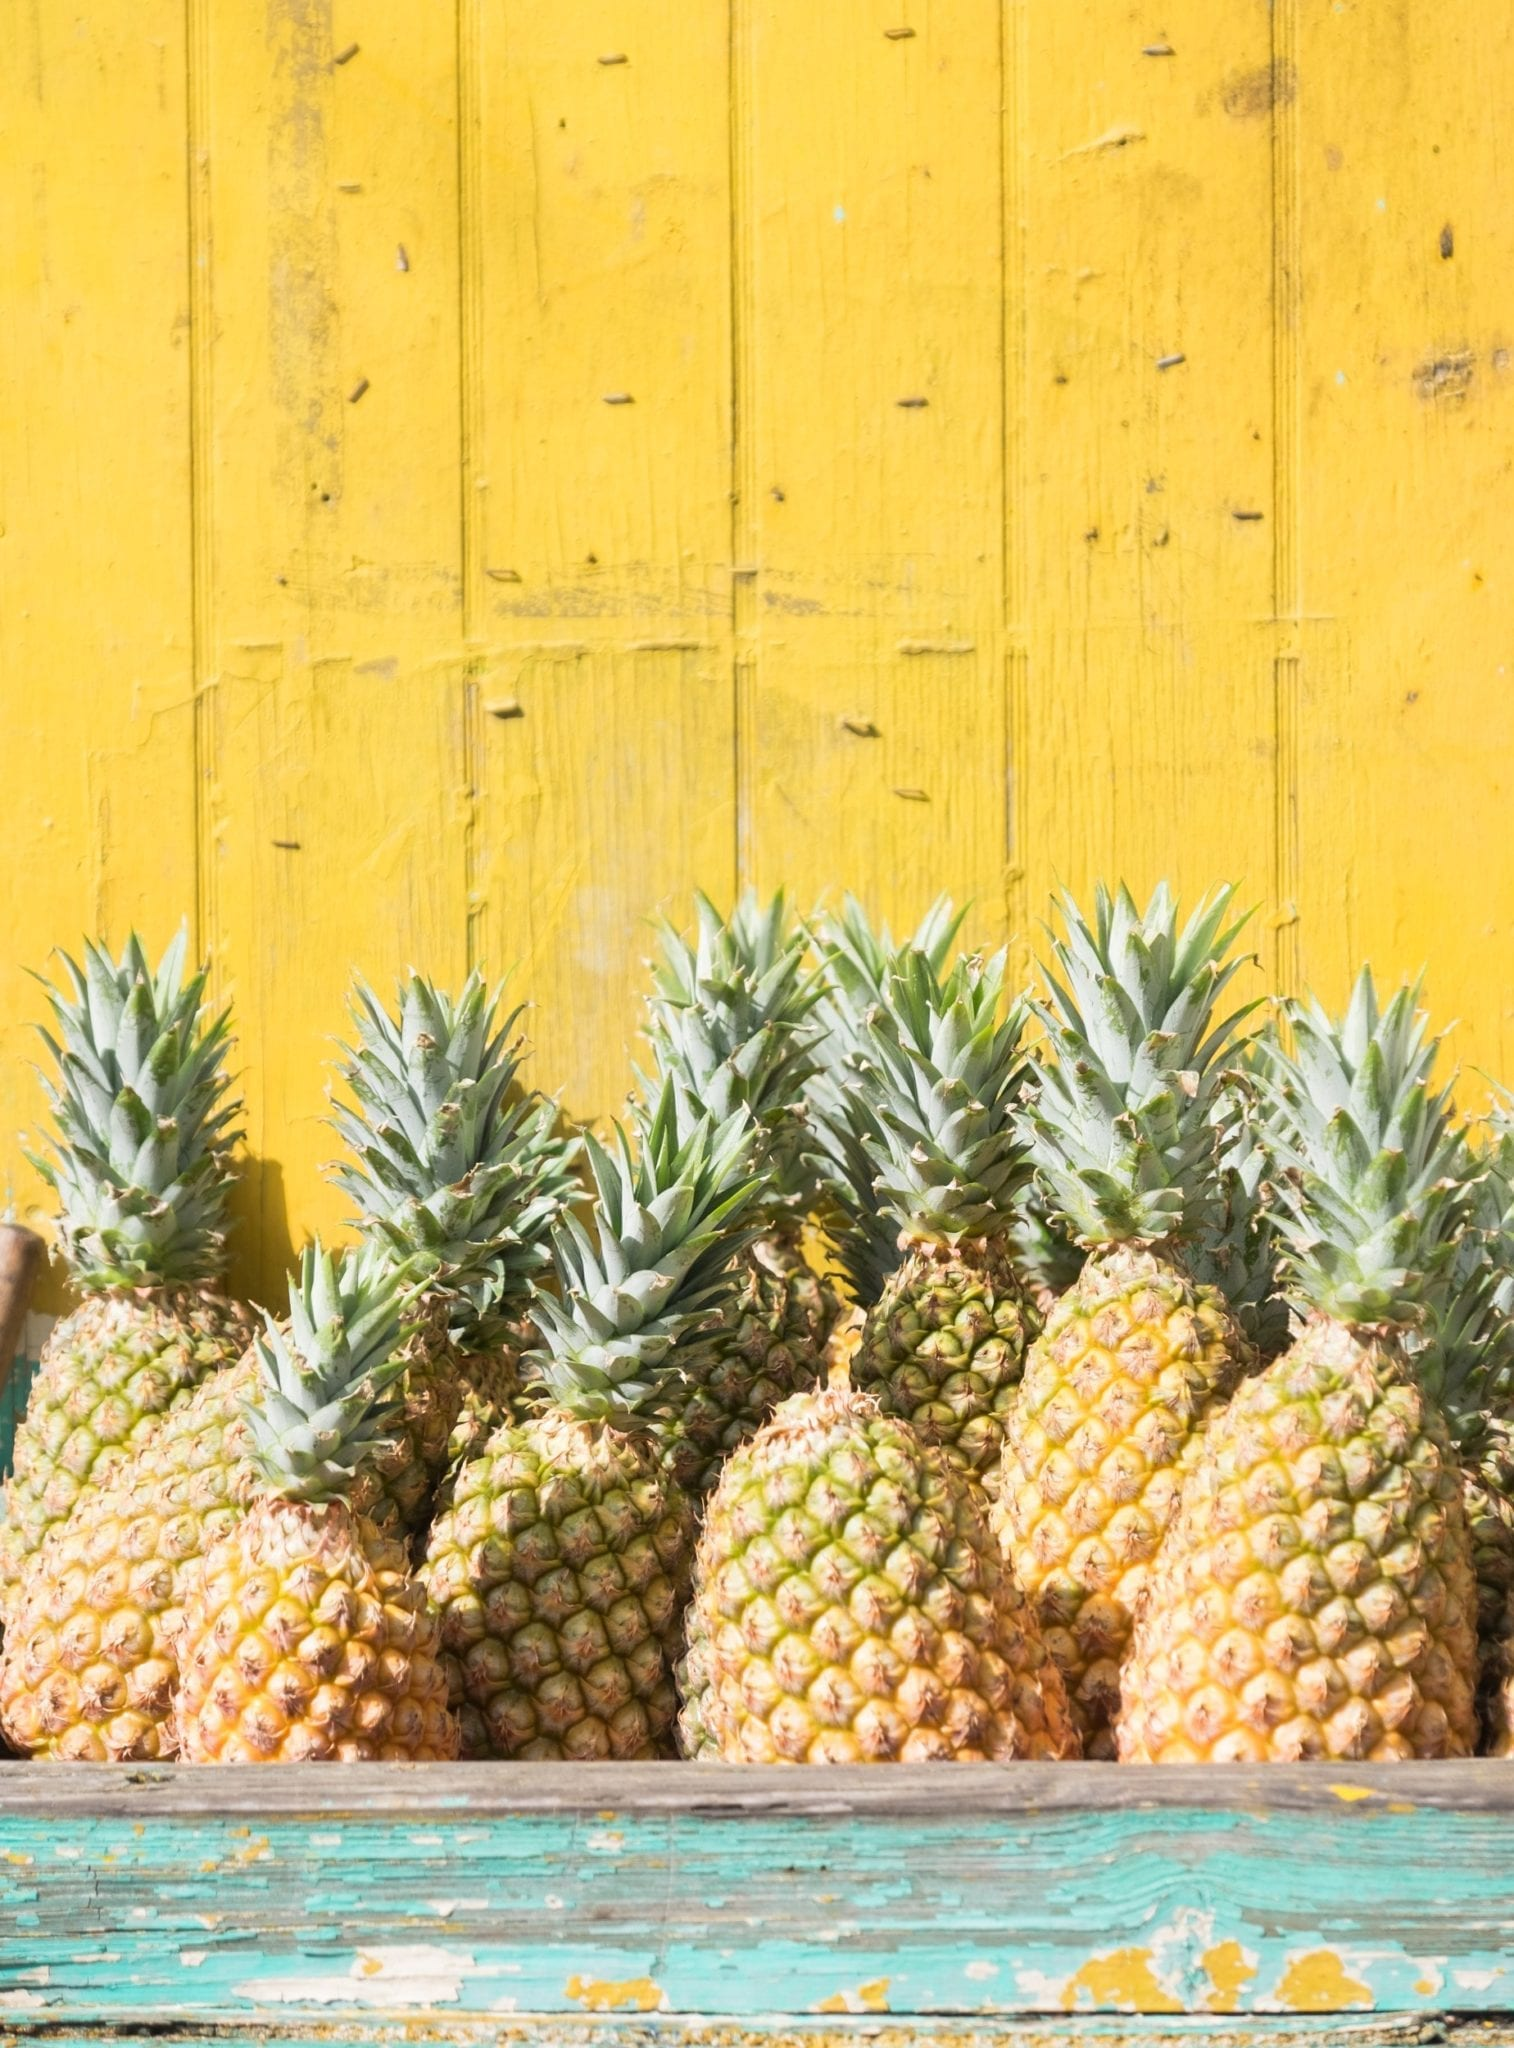 Several pineapples piled up on top of each other in a weathered turquoise wooden container in front of a yellow clapboard wall.